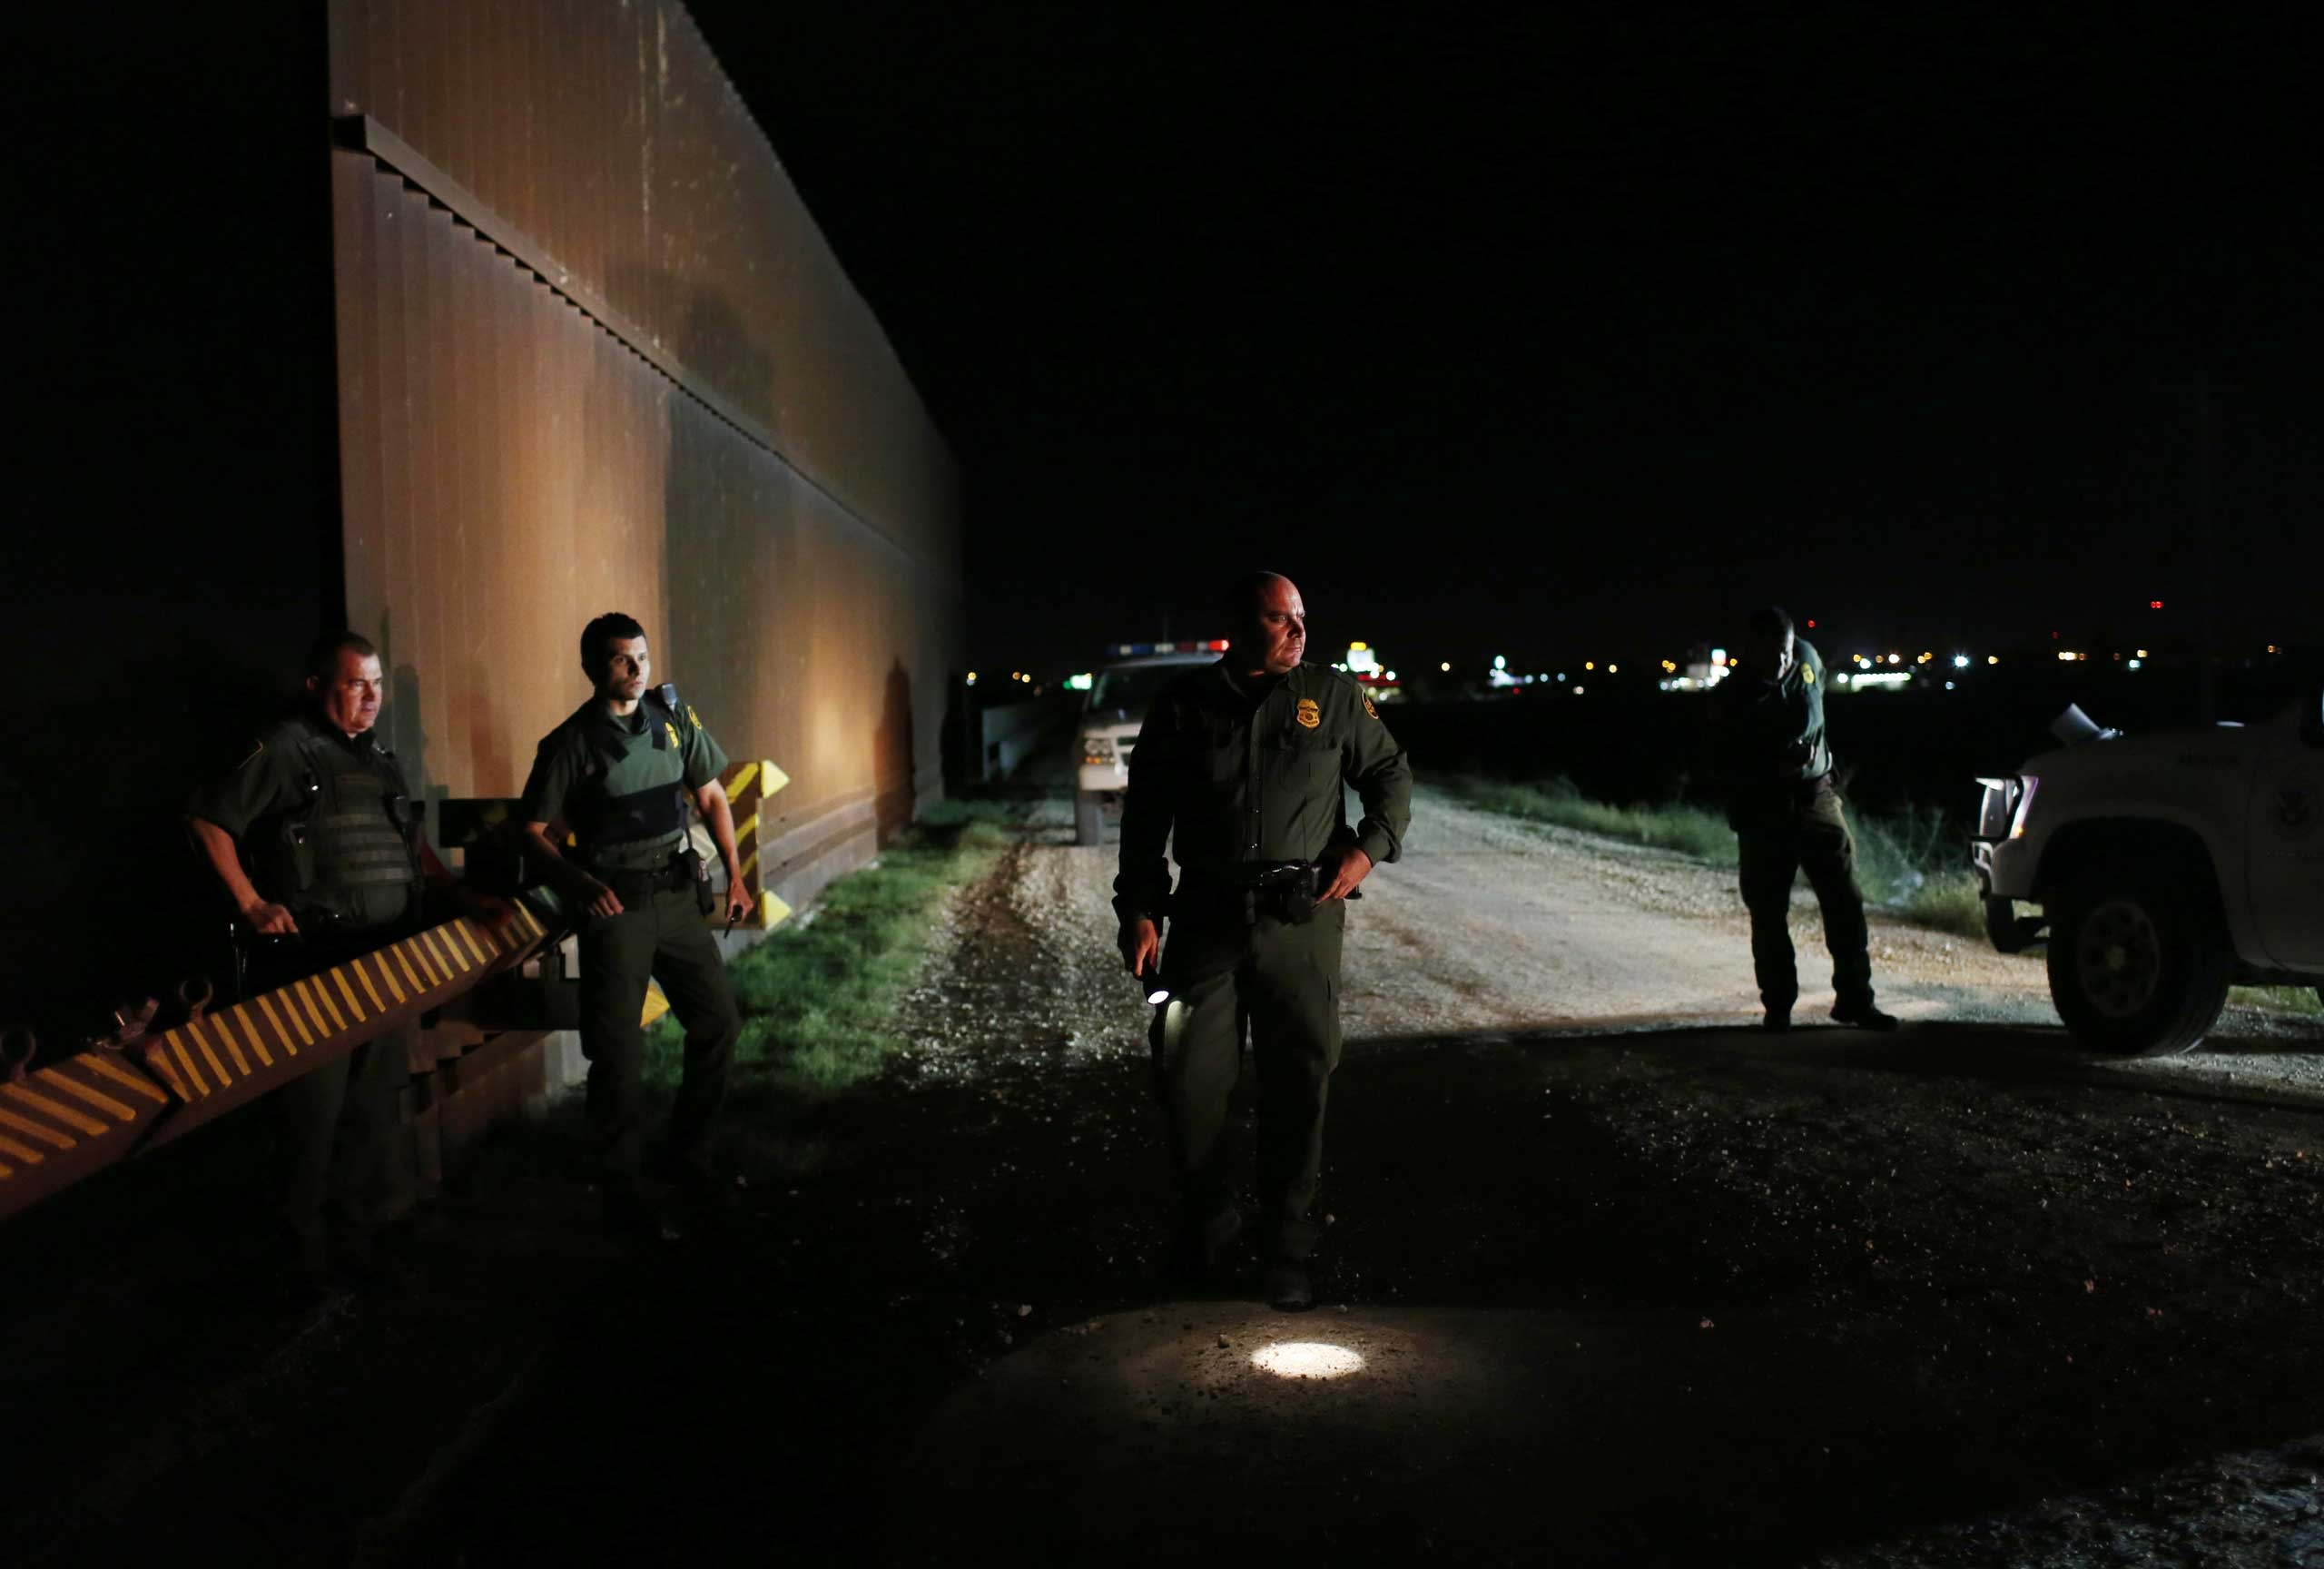 Border Patrol Agents respond to a call near a section of the border fence in Hidalgo, Texas on Feb. 13, 2013.